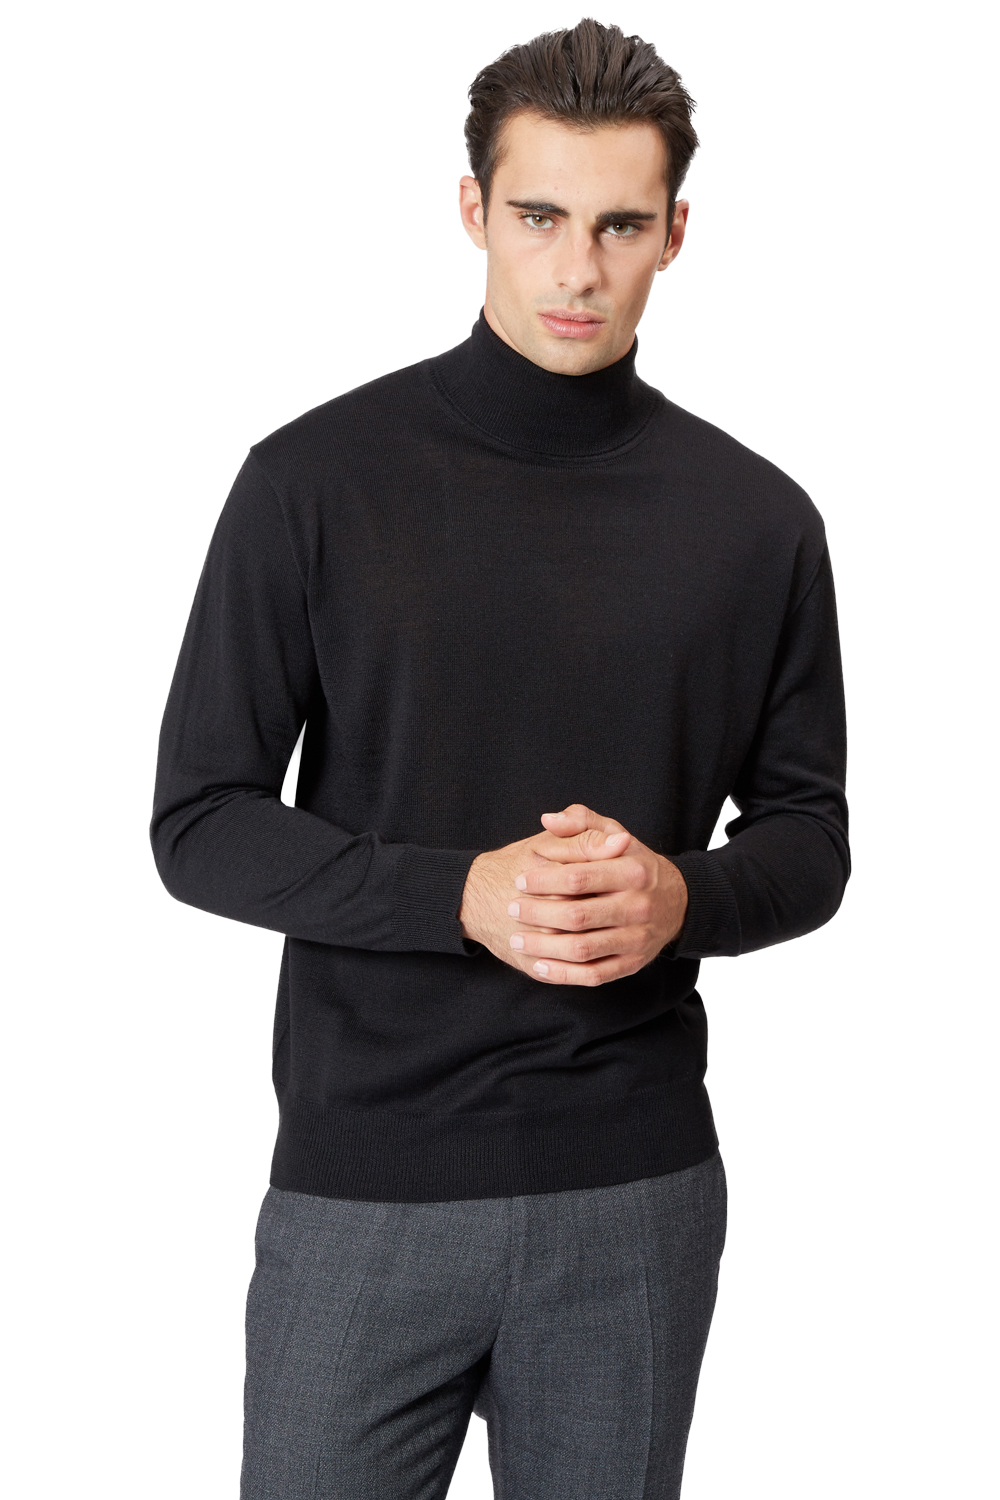 85744af89ca Details about Moss 1851 Mens Jumper Black Roll Neck Thin Knitwear Sweater  Pullover Top